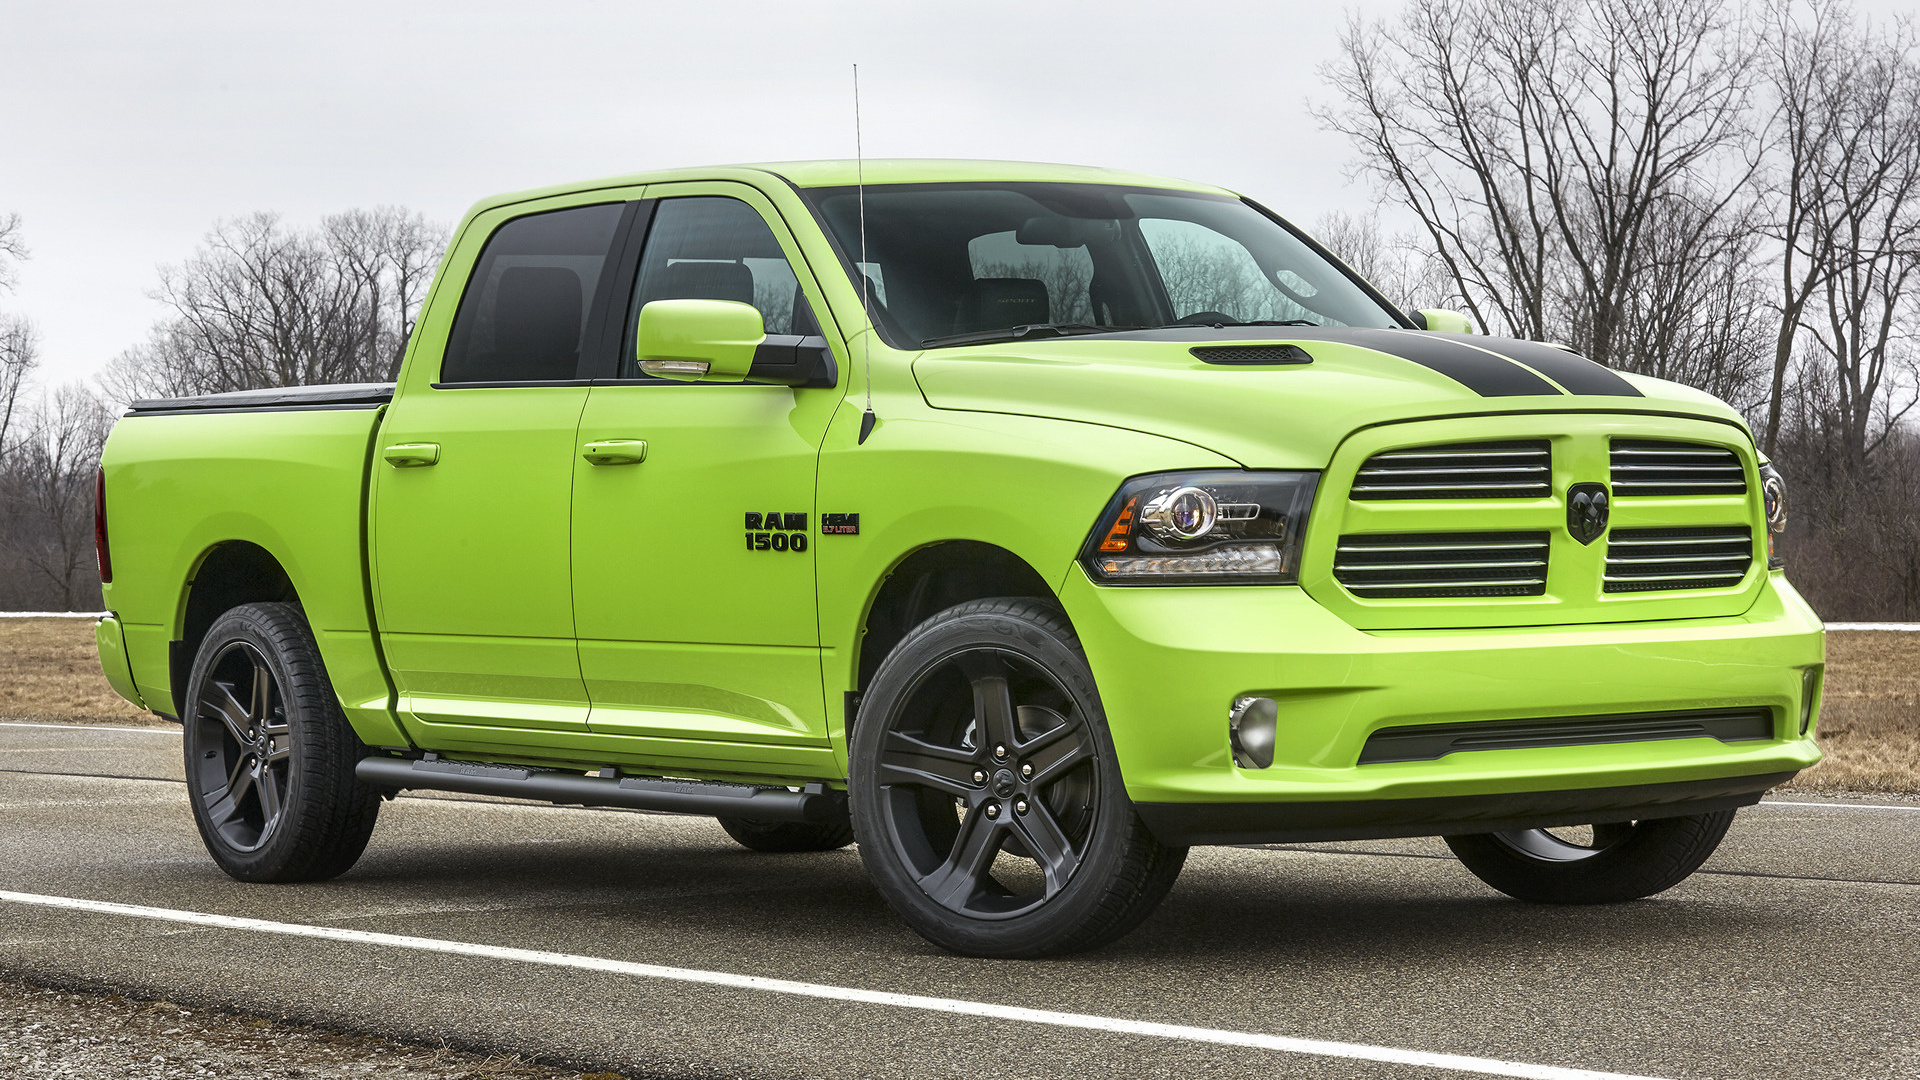 2017 ram 1500 sublime sport crew cab wallpapers and hd images car pixel. Black Bedroom Furniture Sets. Home Design Ideas